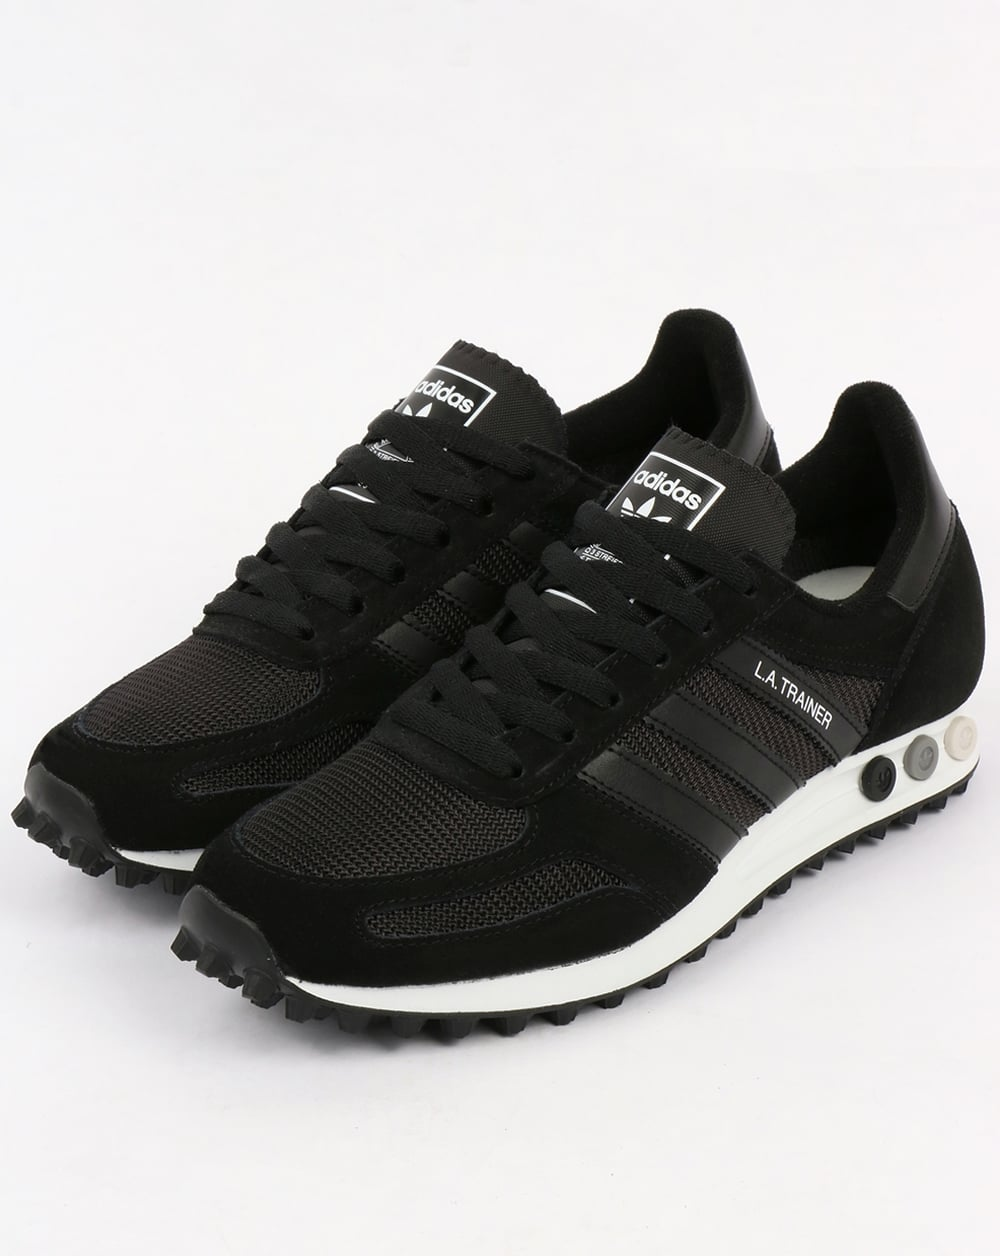 adidas la trainer og black black white shoes running mens. Black Bedroom Furniture Sets. Home Design Ideas